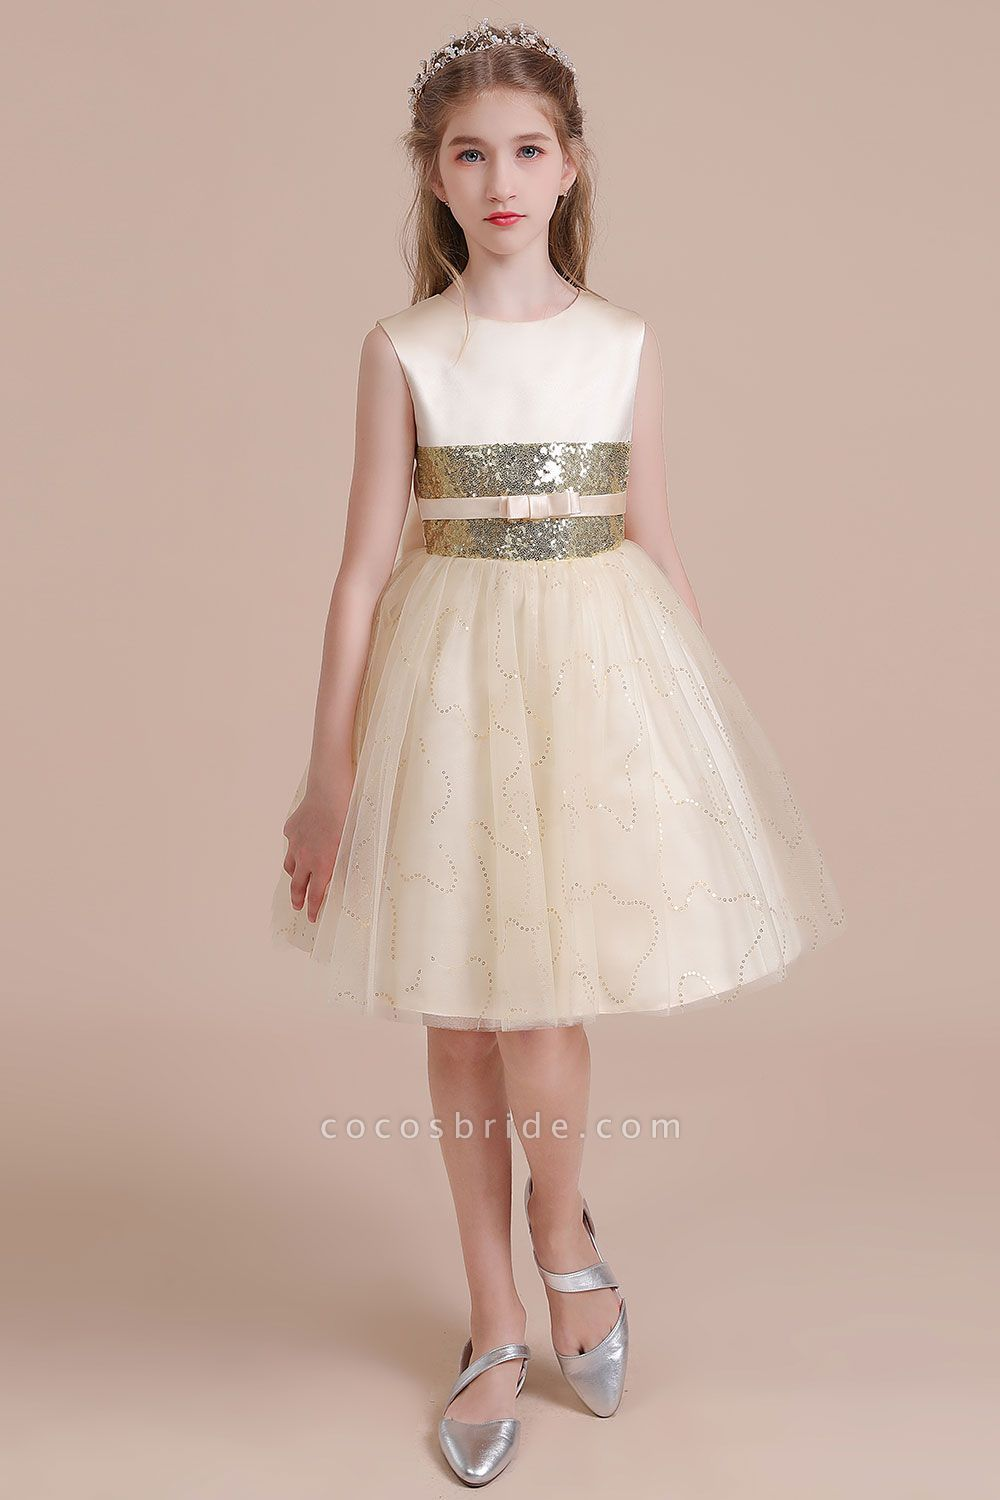 Cute Sequins Tulle A Line Flower Girl Dress In 2020